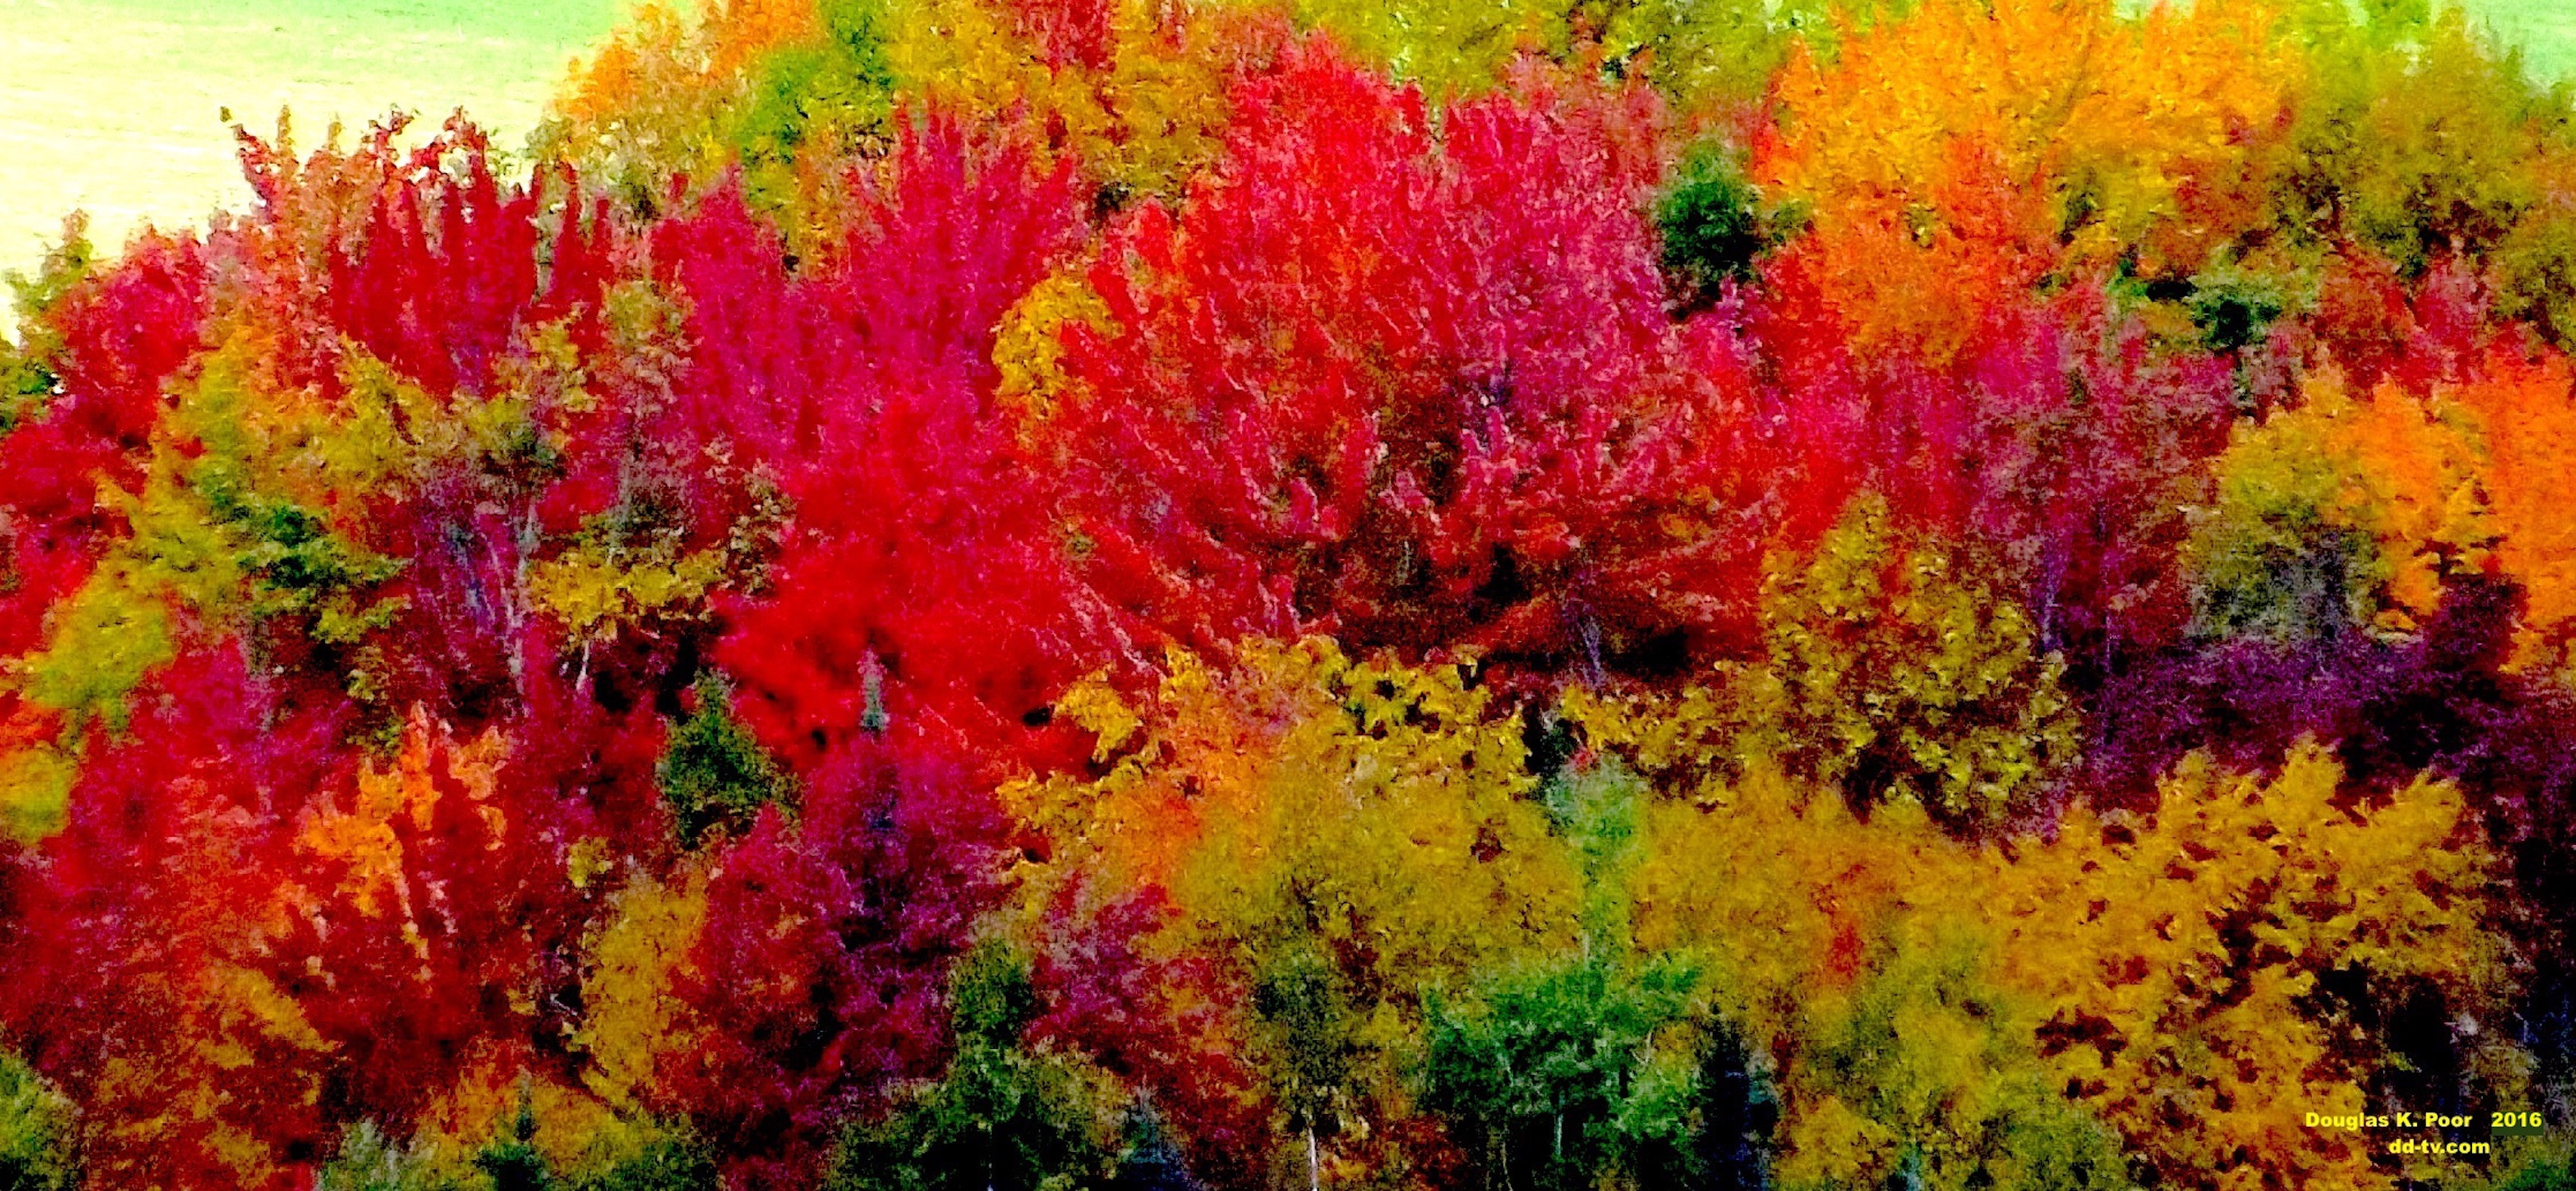 -----------============-SOFT-MIX-OF-FALL-FOLIAGE-COLORS-smaller-size================================================================================================================================================================-SOFT-MIX-OF-FALL-FOLIAGE-COLORS-smaller-size